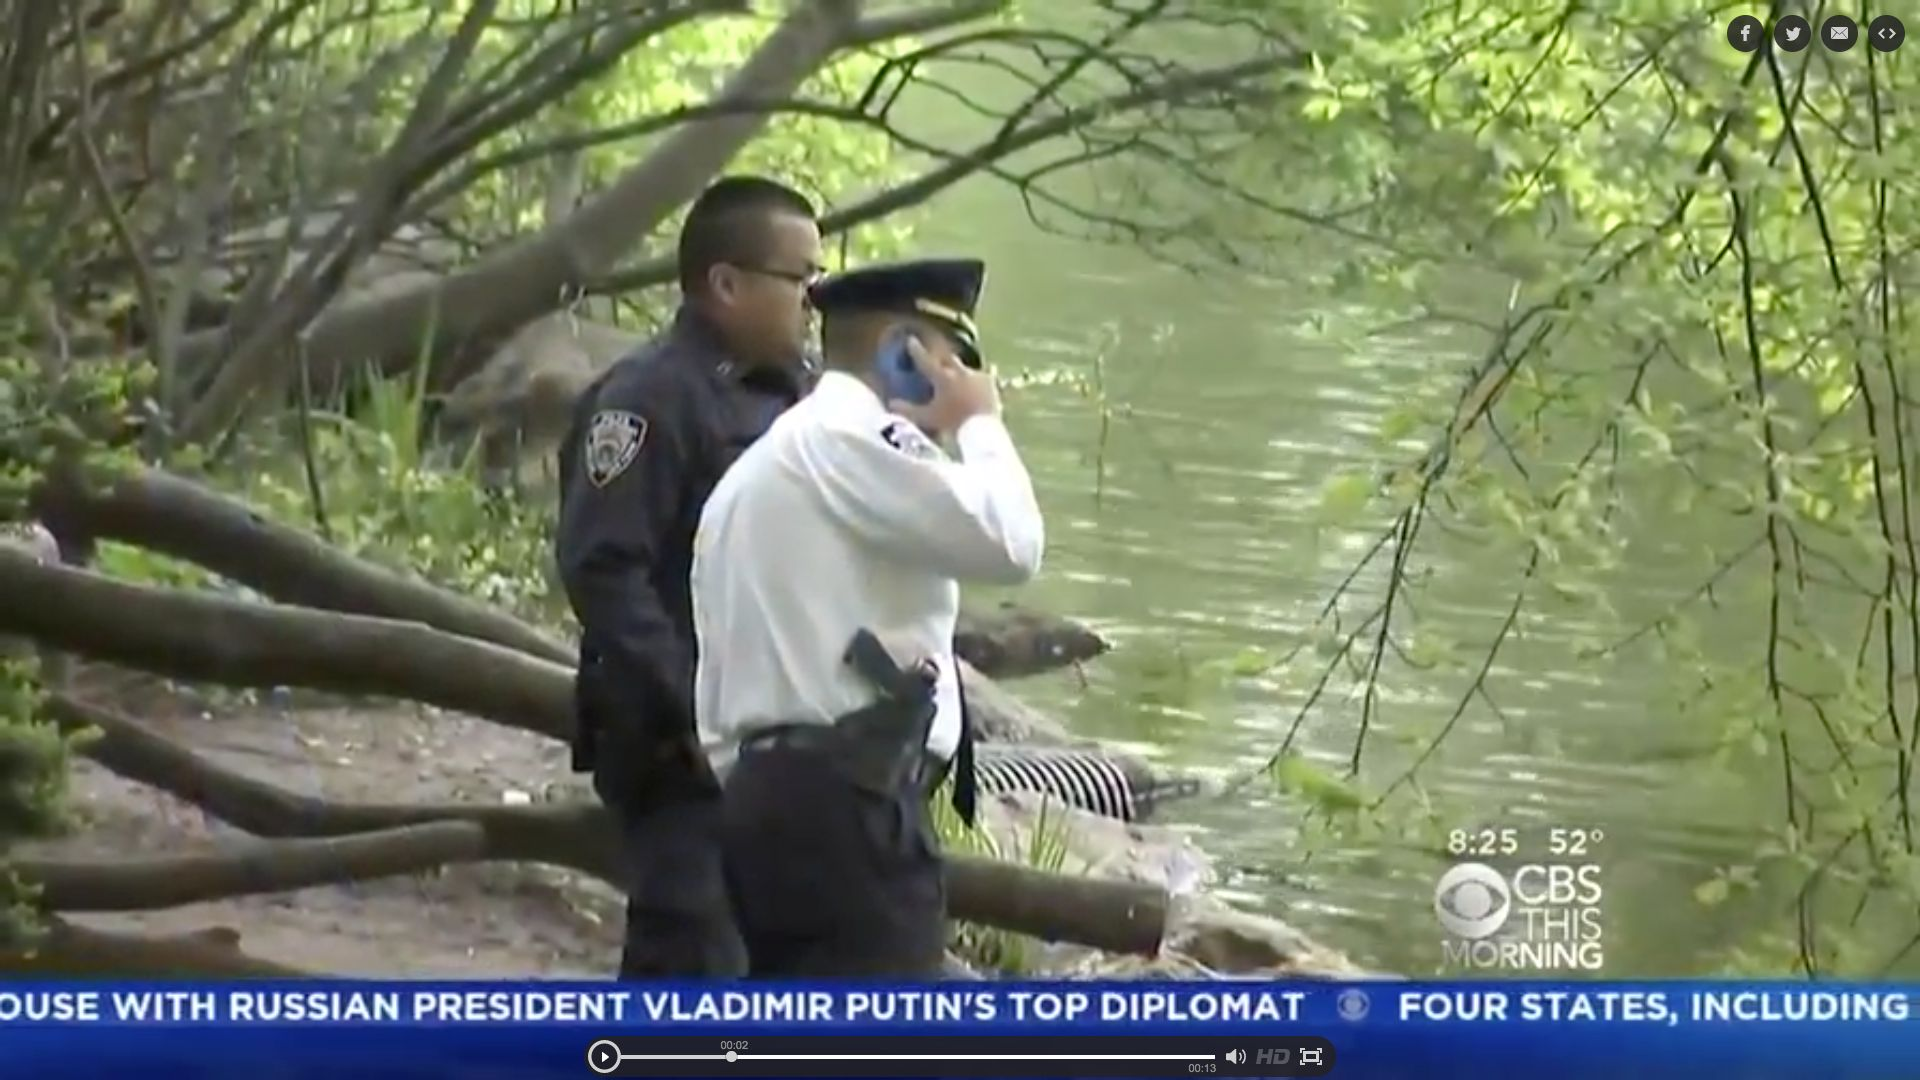 Police at a Central Park pond on Wednesday after a body was recovered from the water.